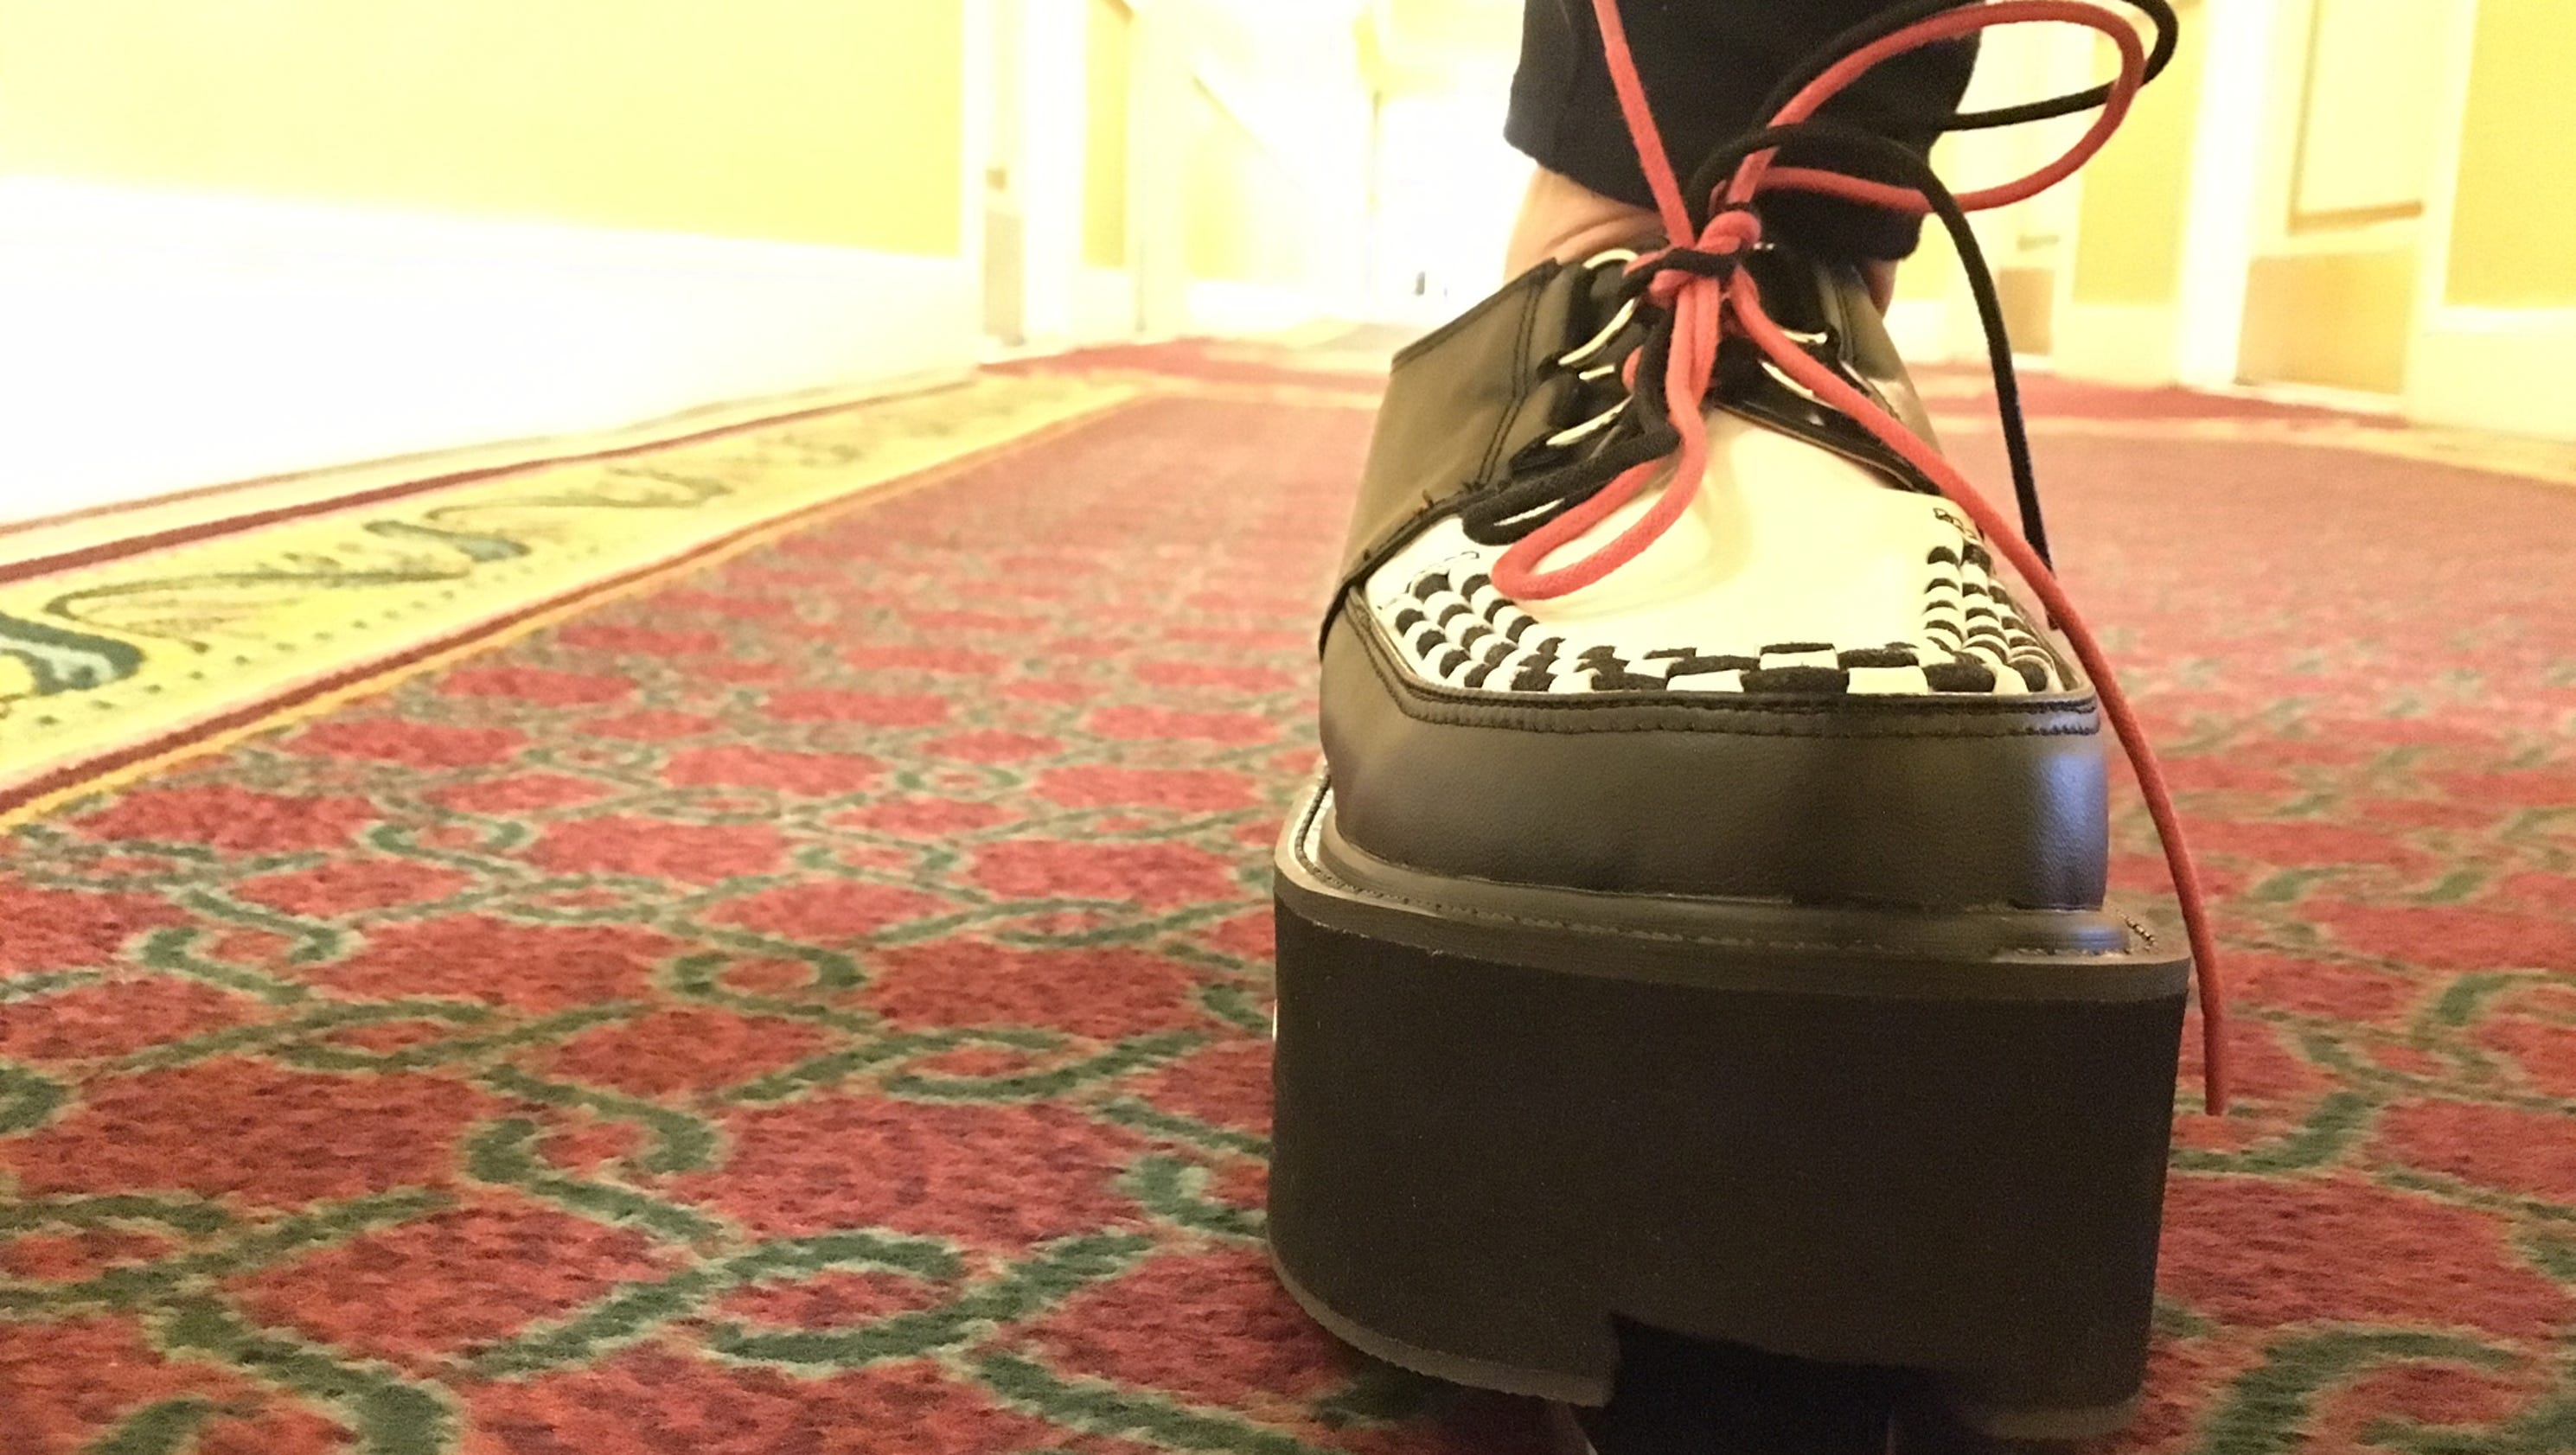 Vacuum Shoes Crumbs As You Stroll